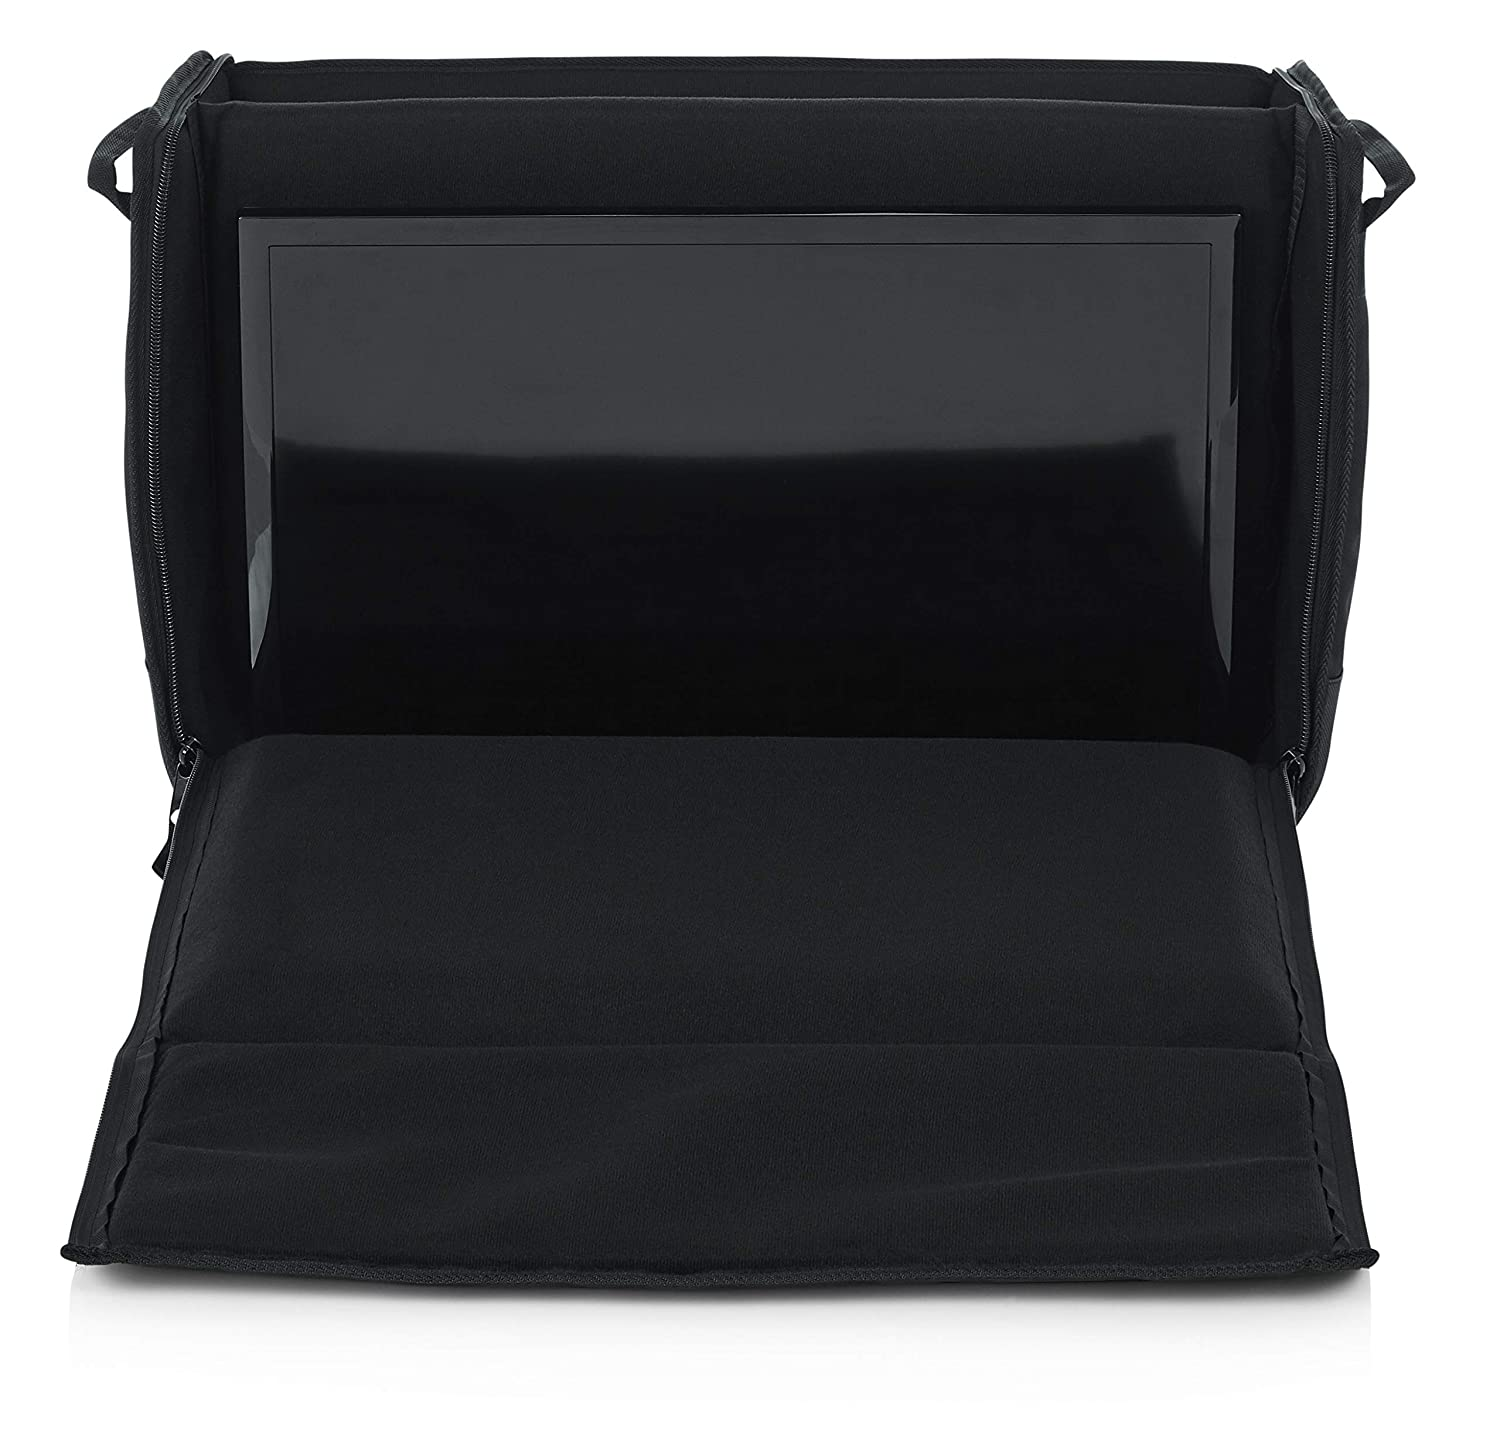 Carry Tote Bag Padded Nylon for 19-24in LCD Screen Monitor TV Transporting Case